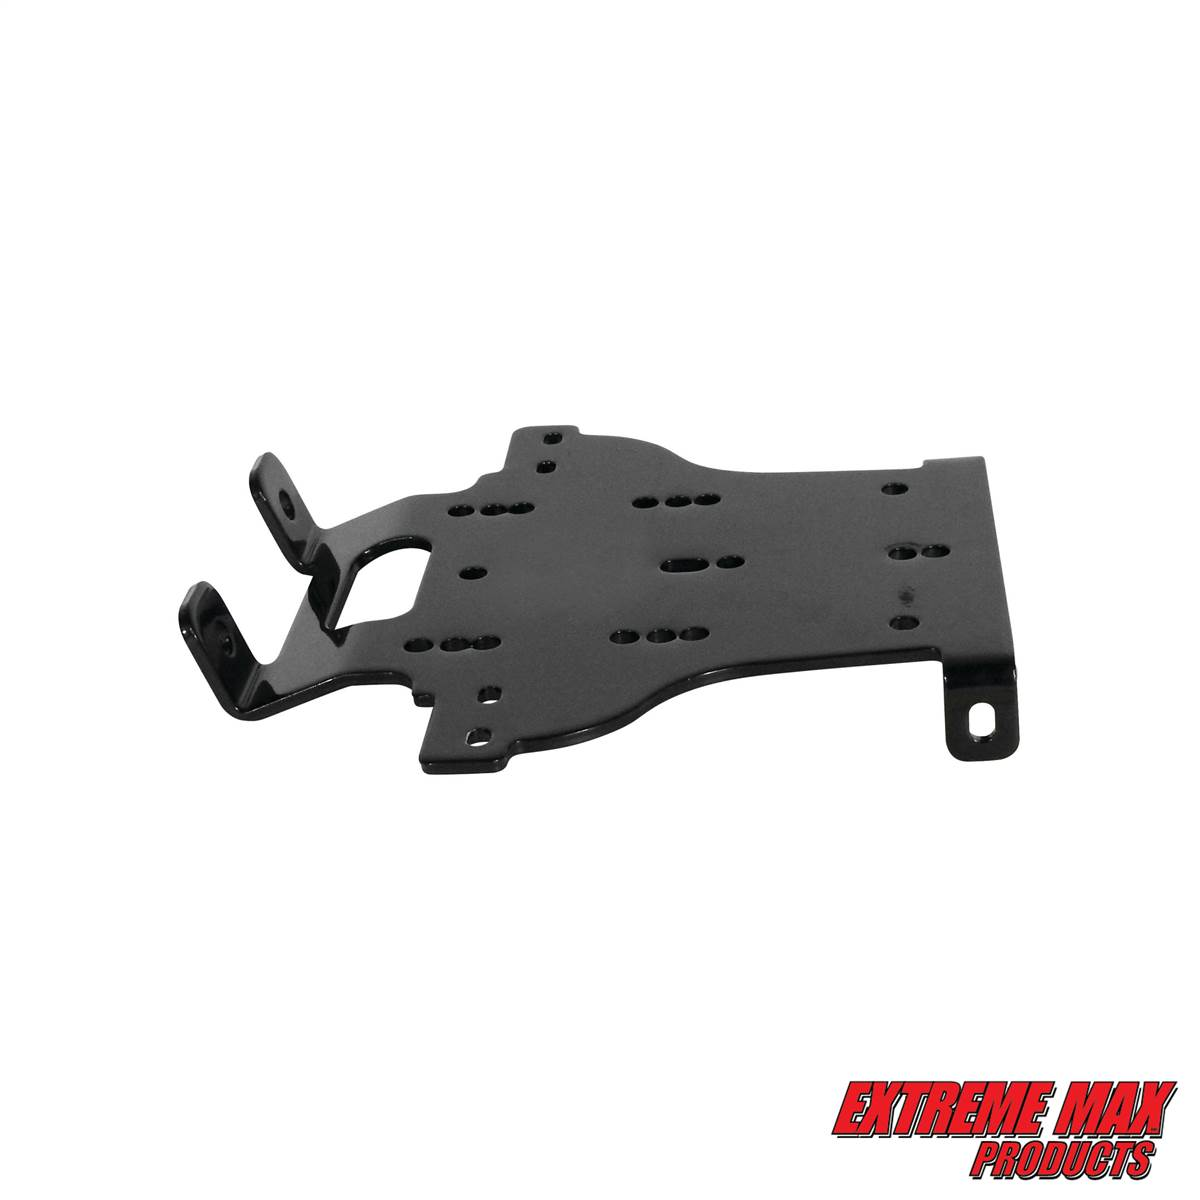 Extreme Max 5600.3116 Winch Mount for Honda TRX500 Foreman and TRX500 Rubicon